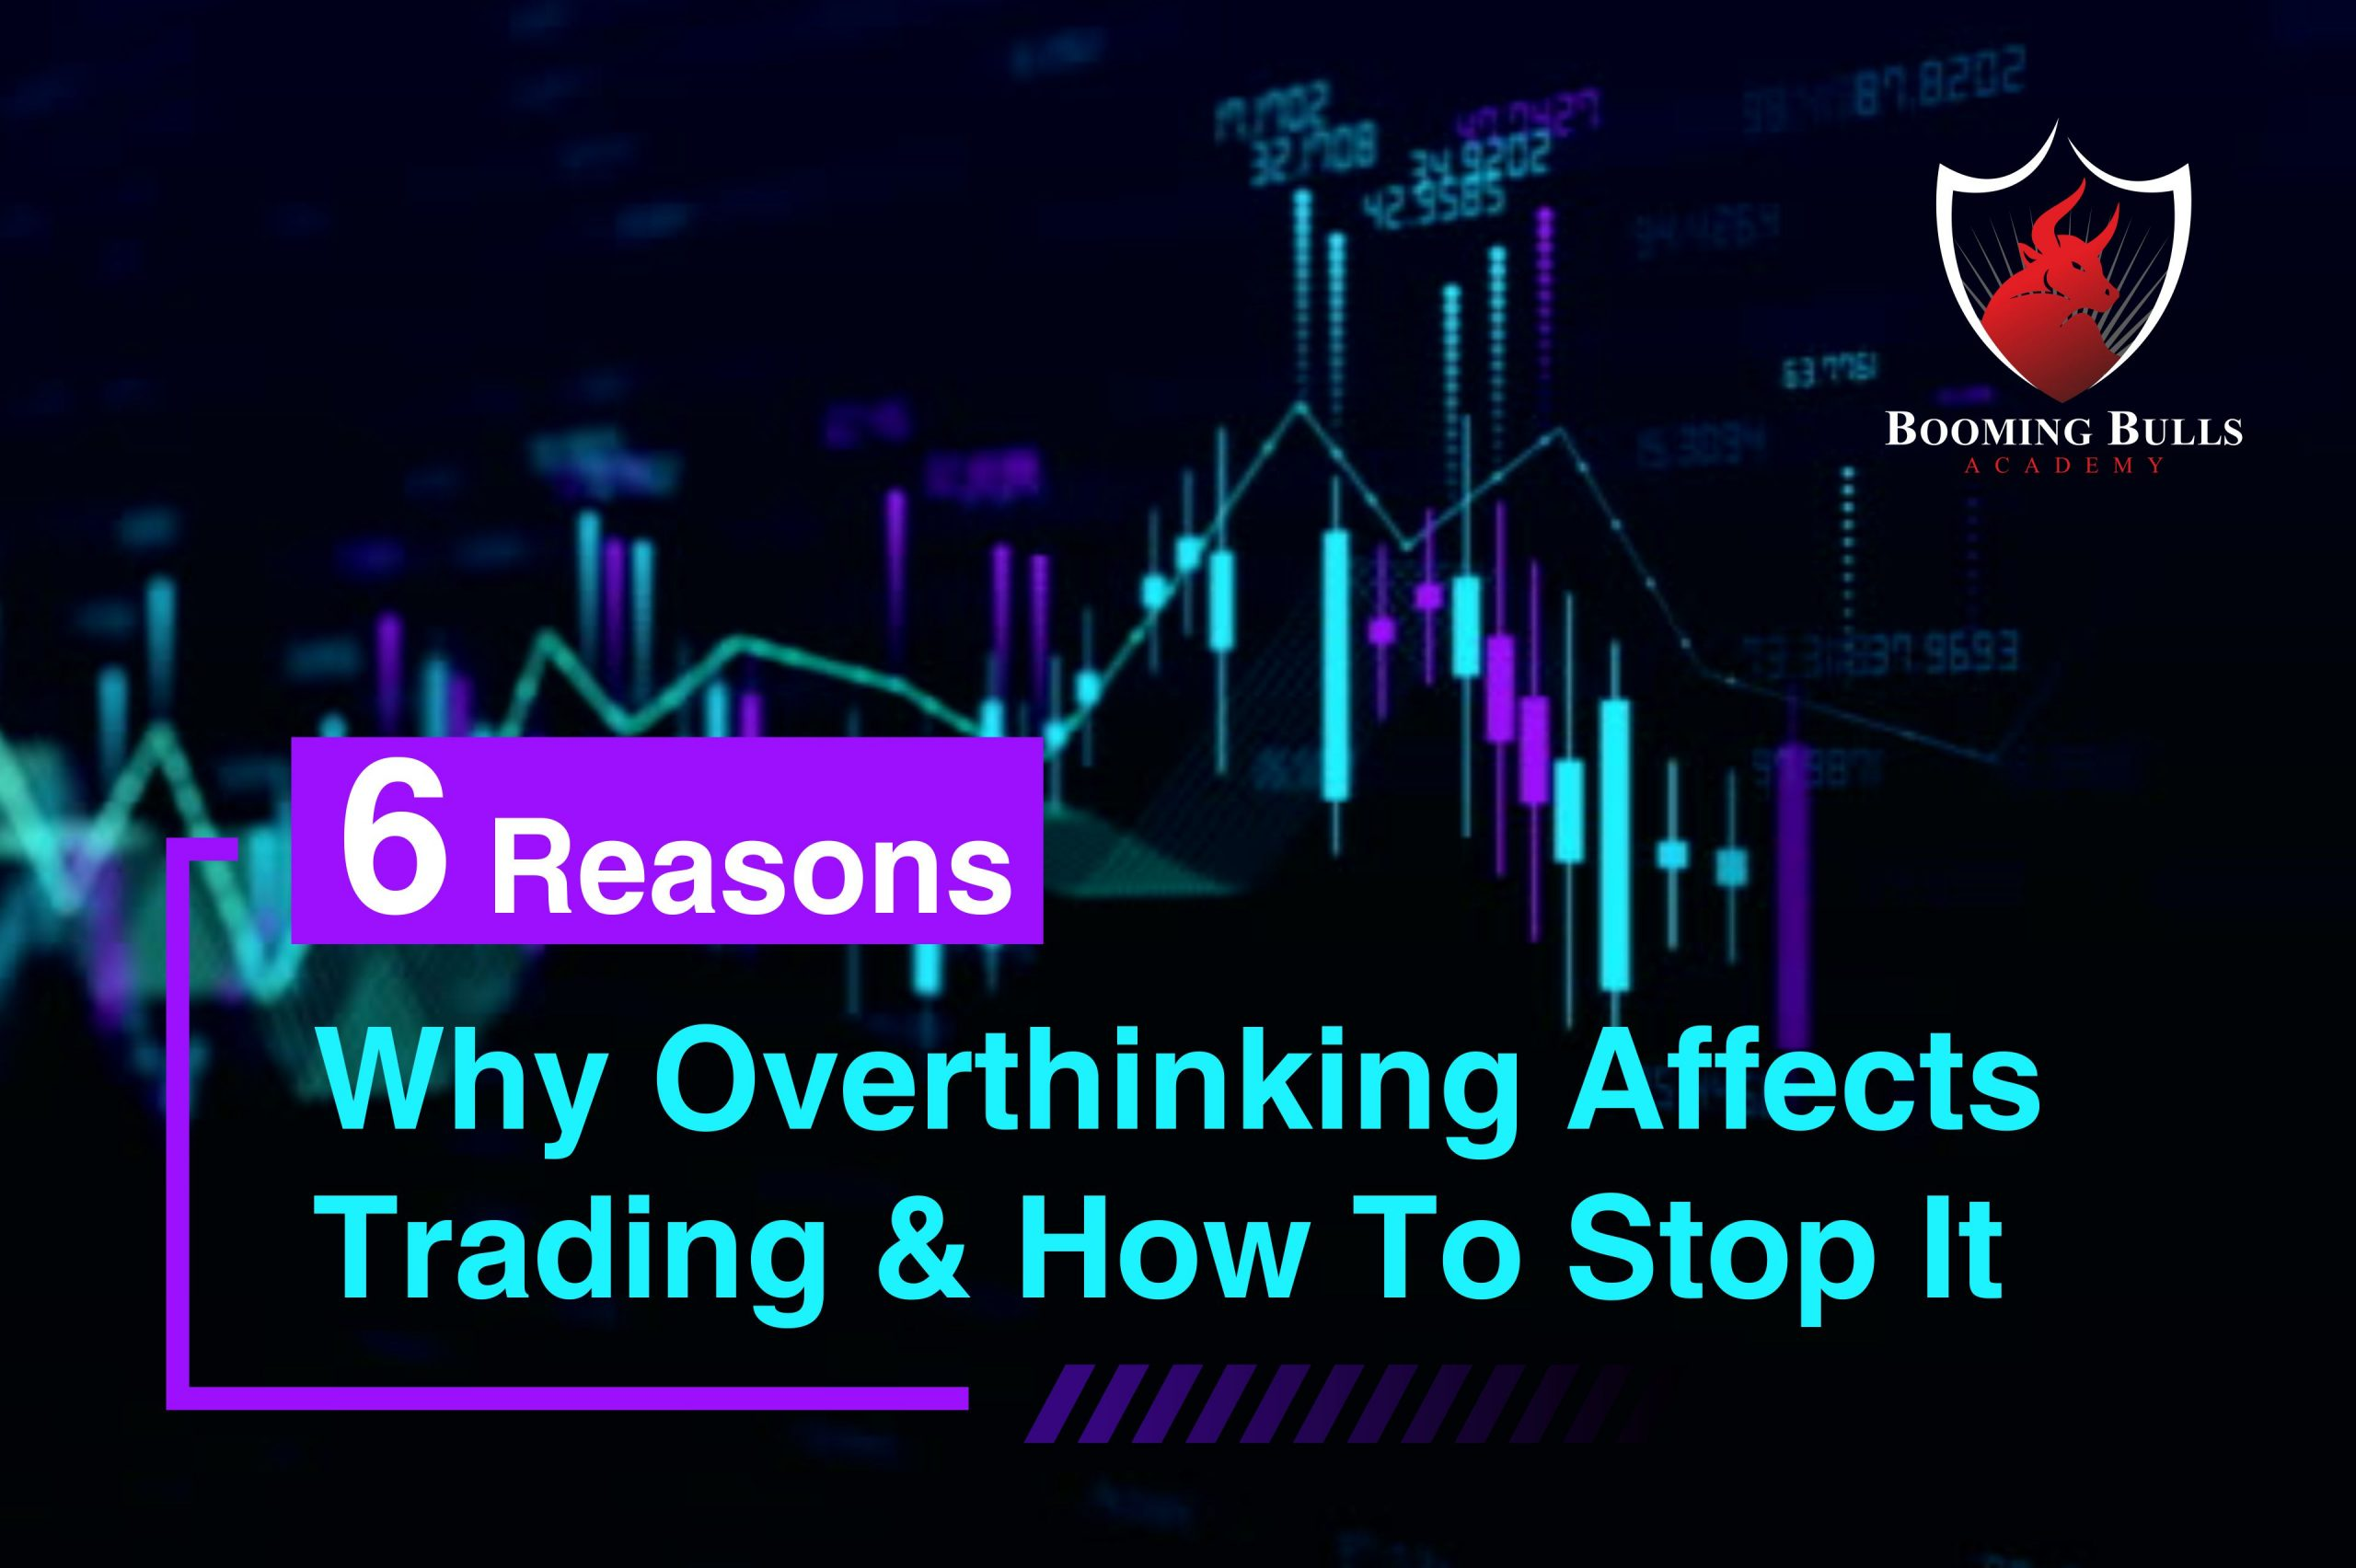 6 Reasons Why Overthinking Affects Trading & How To Stop It